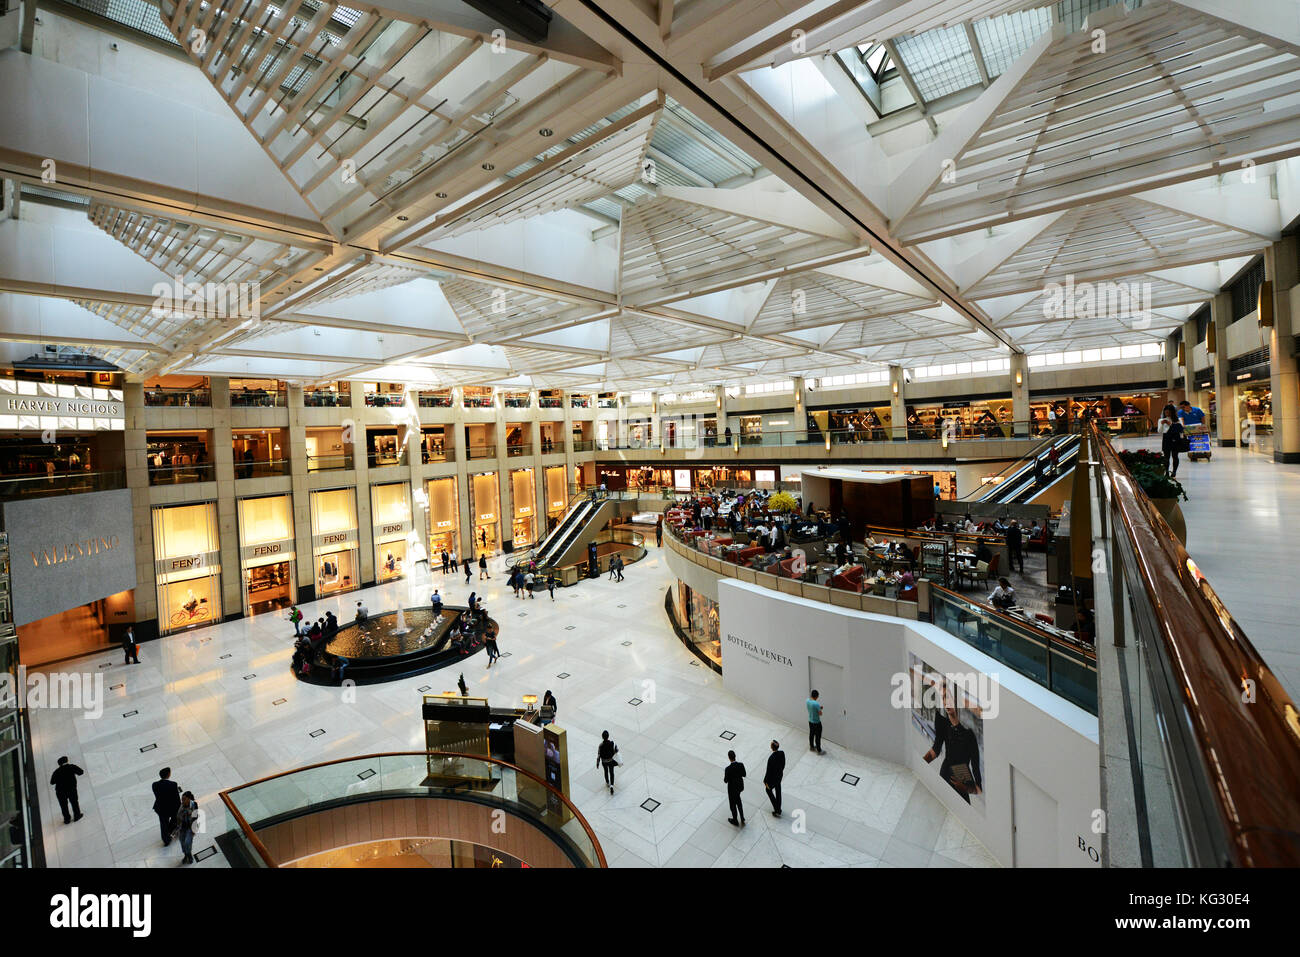 The Landmark shopping mall in Central, Hong Kong. - Stock Image